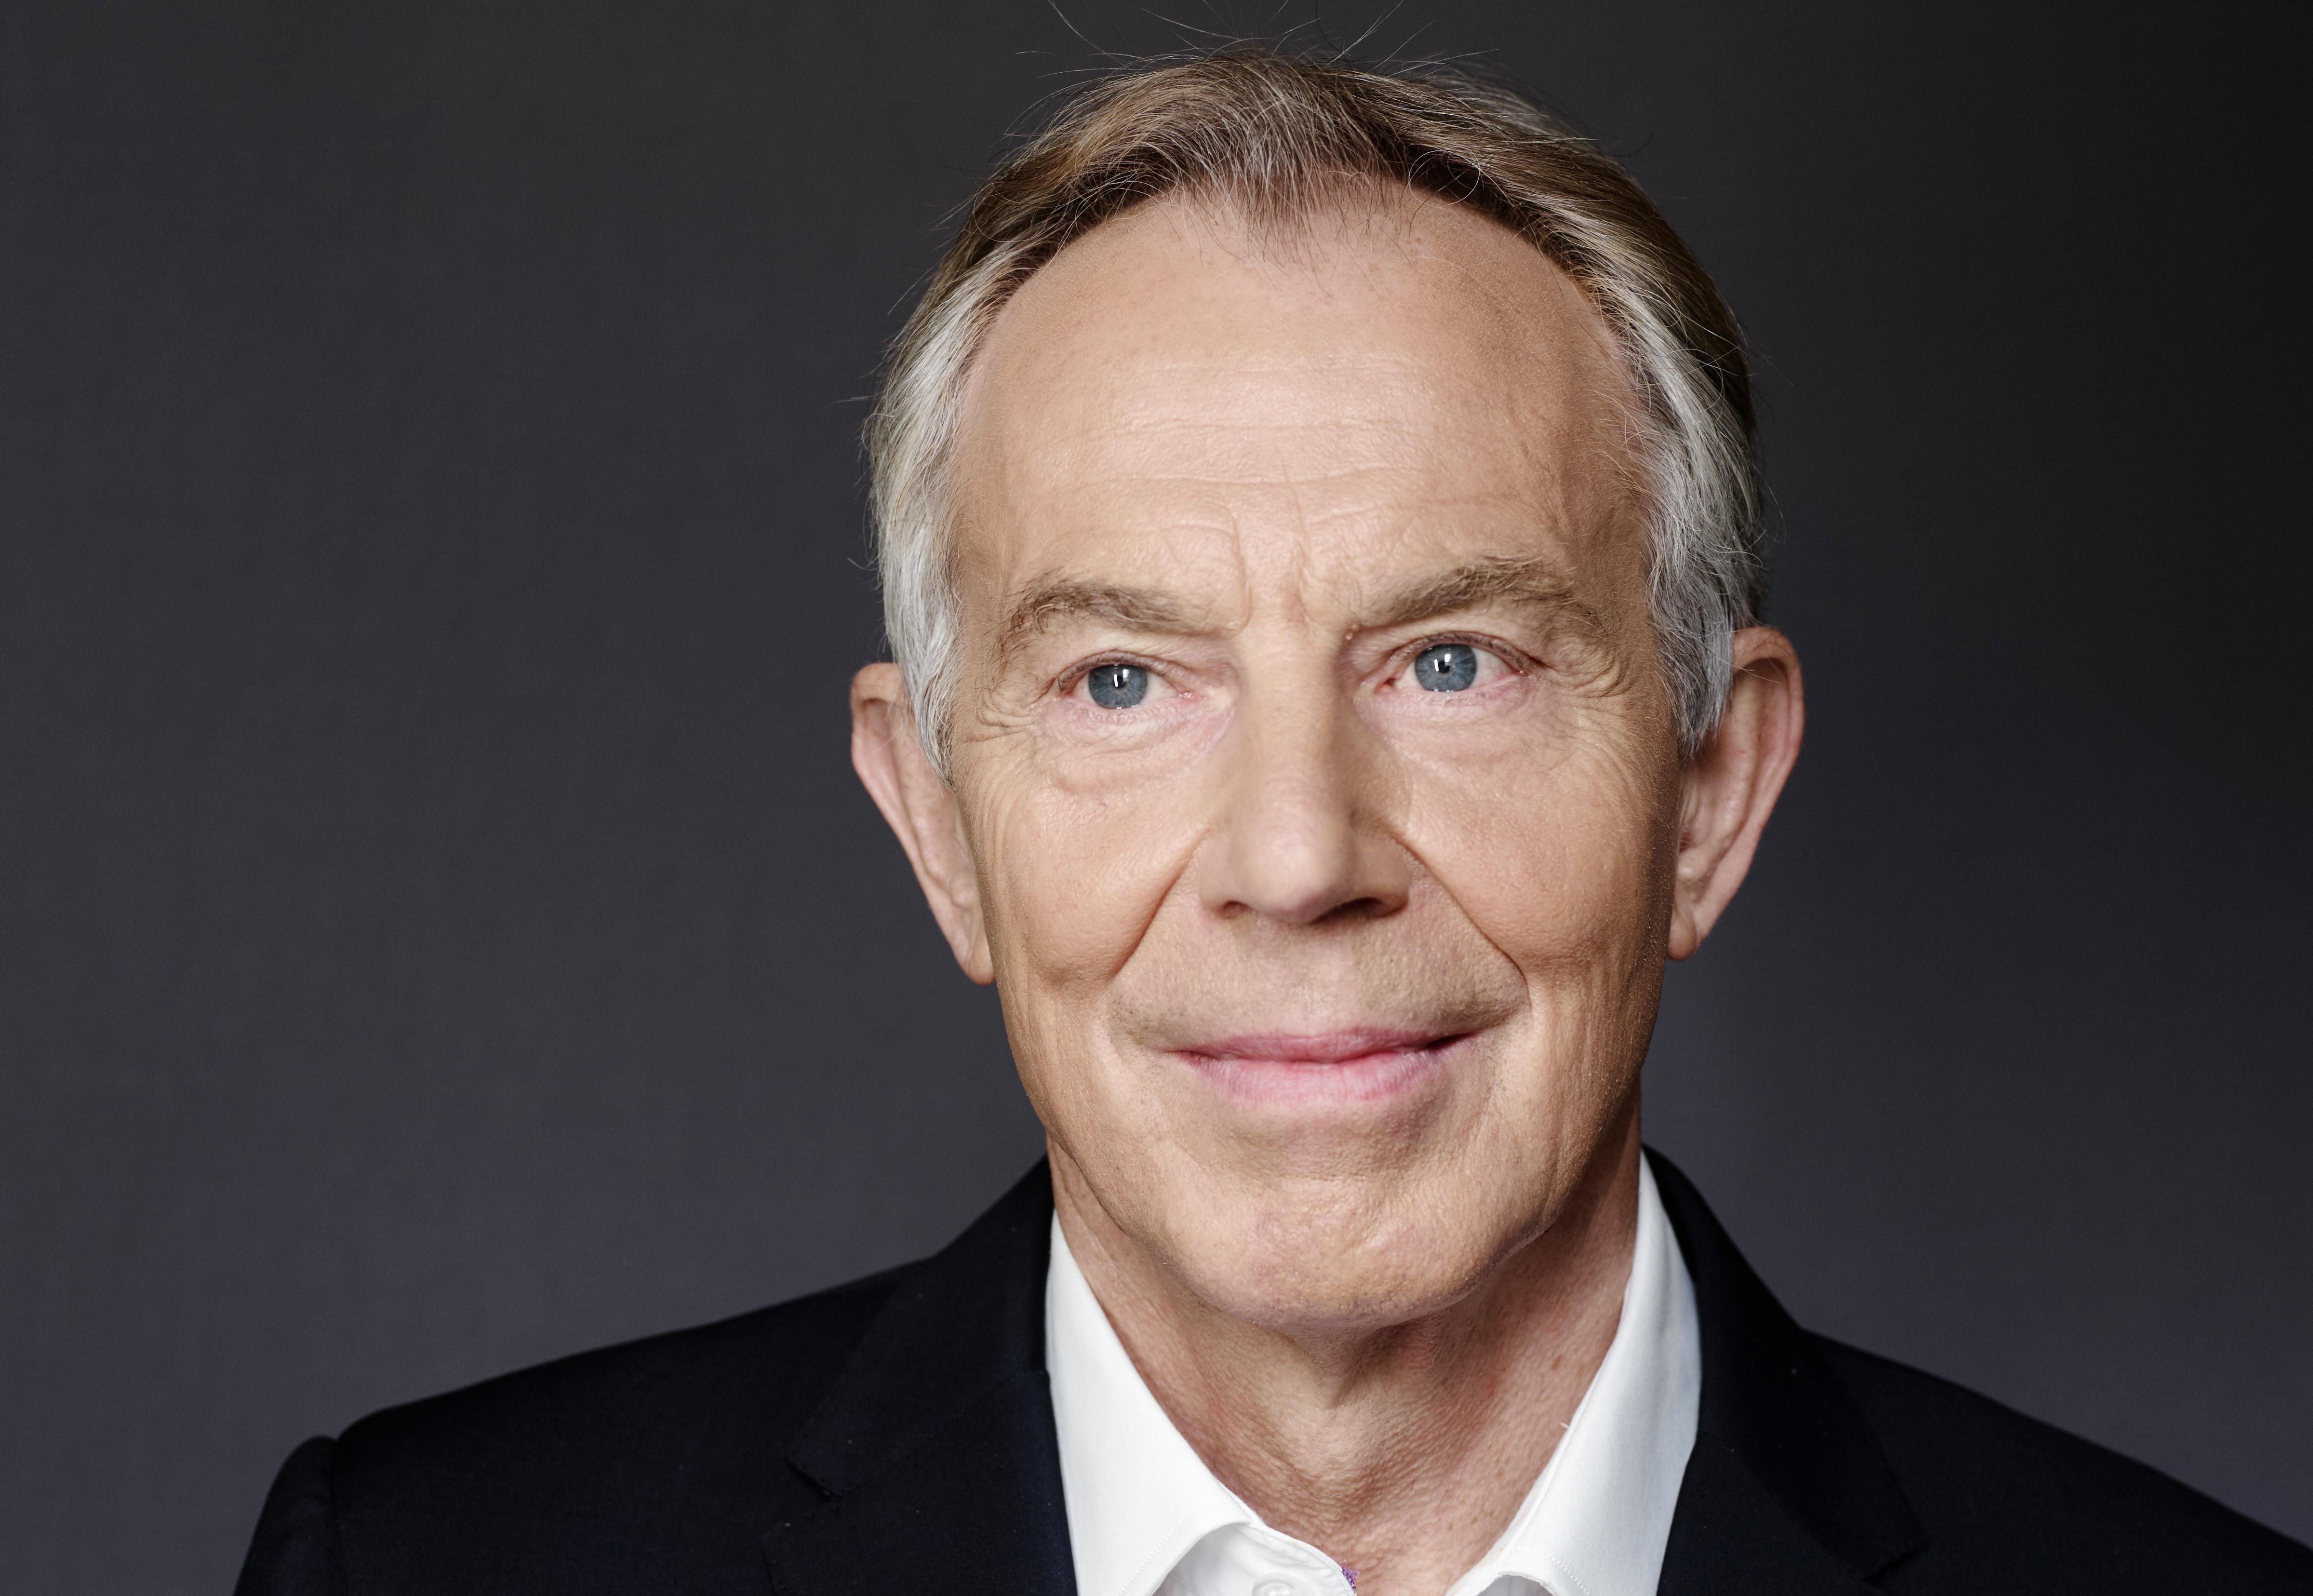 Tony Blair: 'Labour can win at any point that it wants to get back to winning ways'